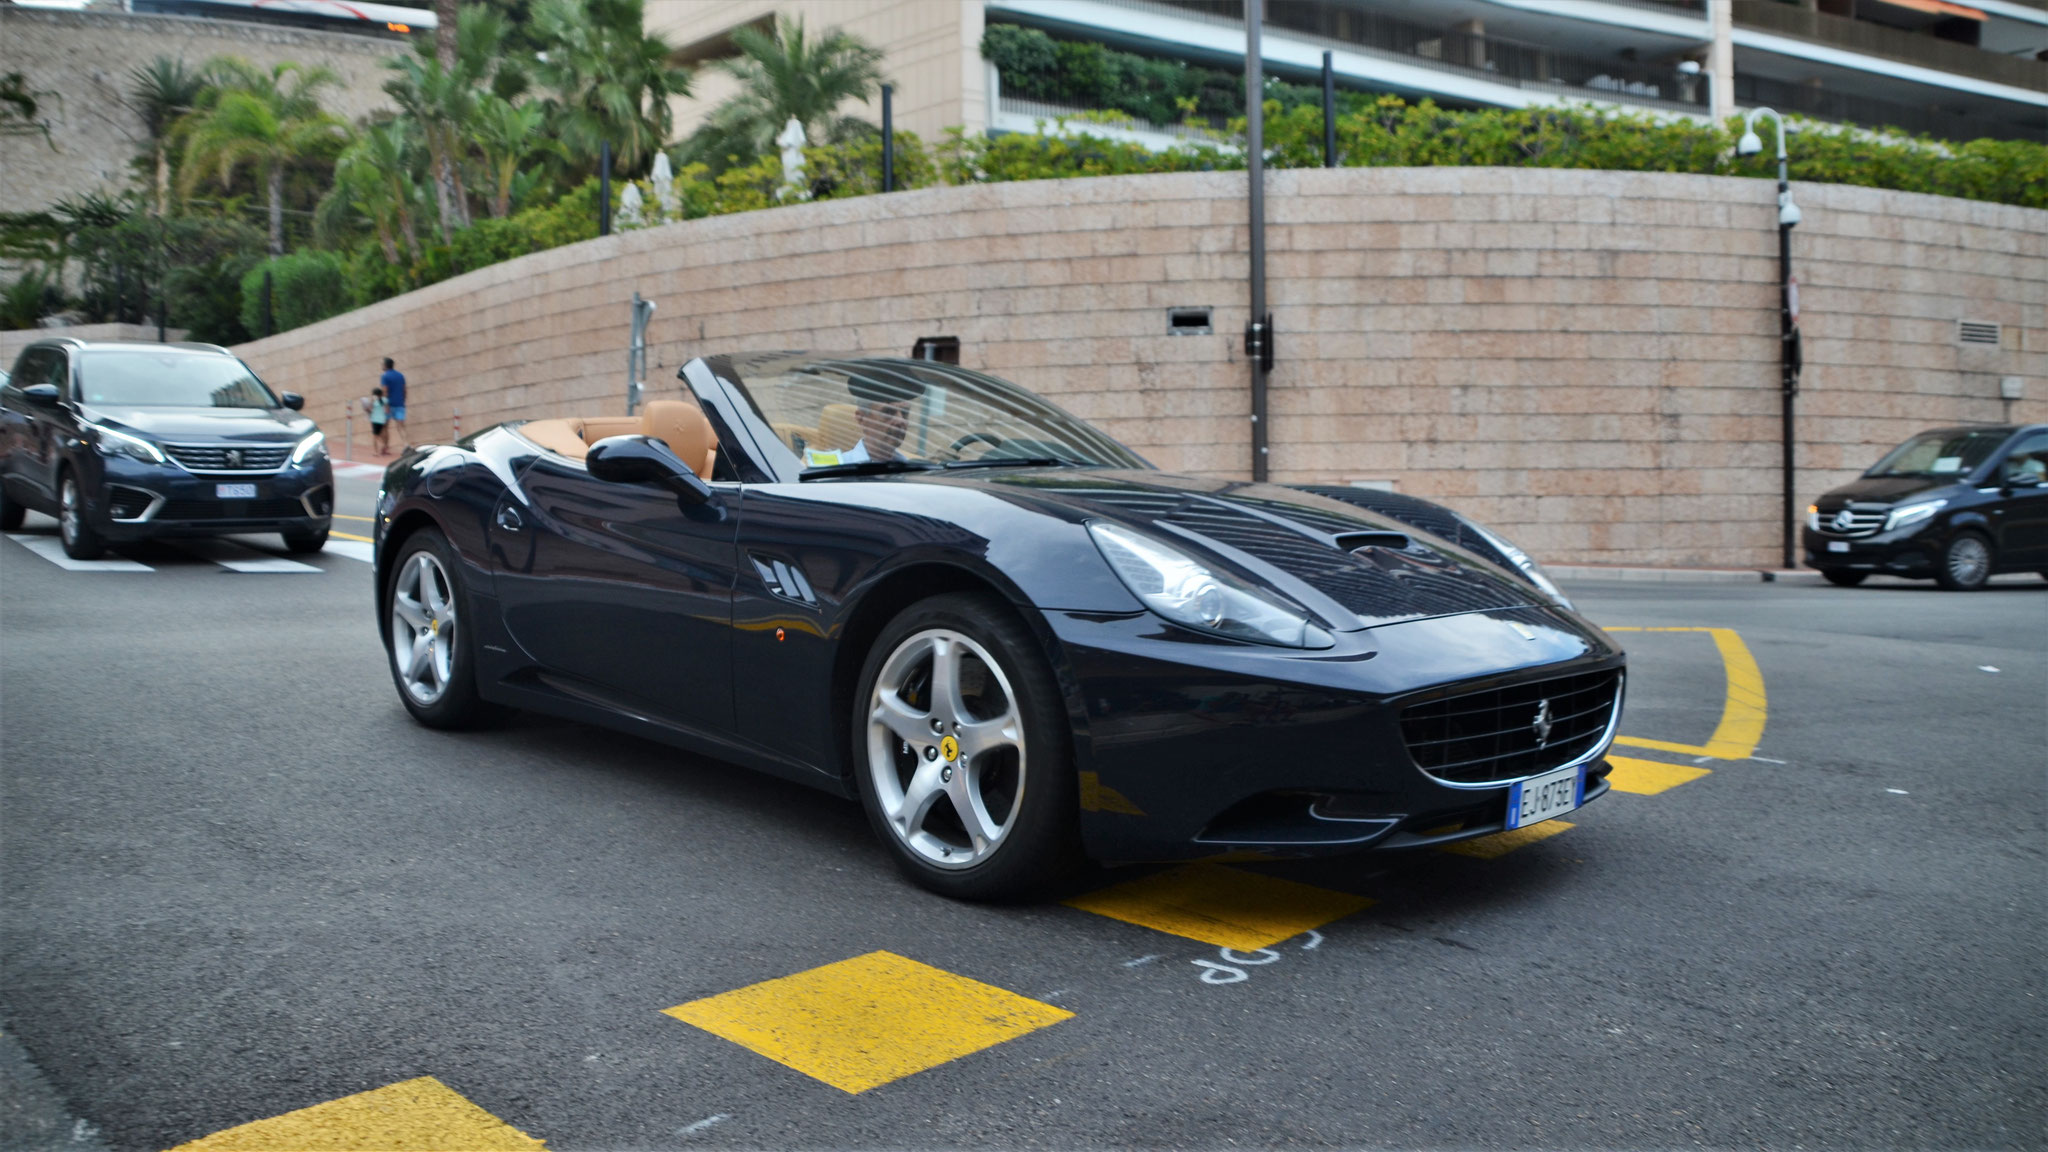 Ferrari California - EJ-873-EY (ITA)